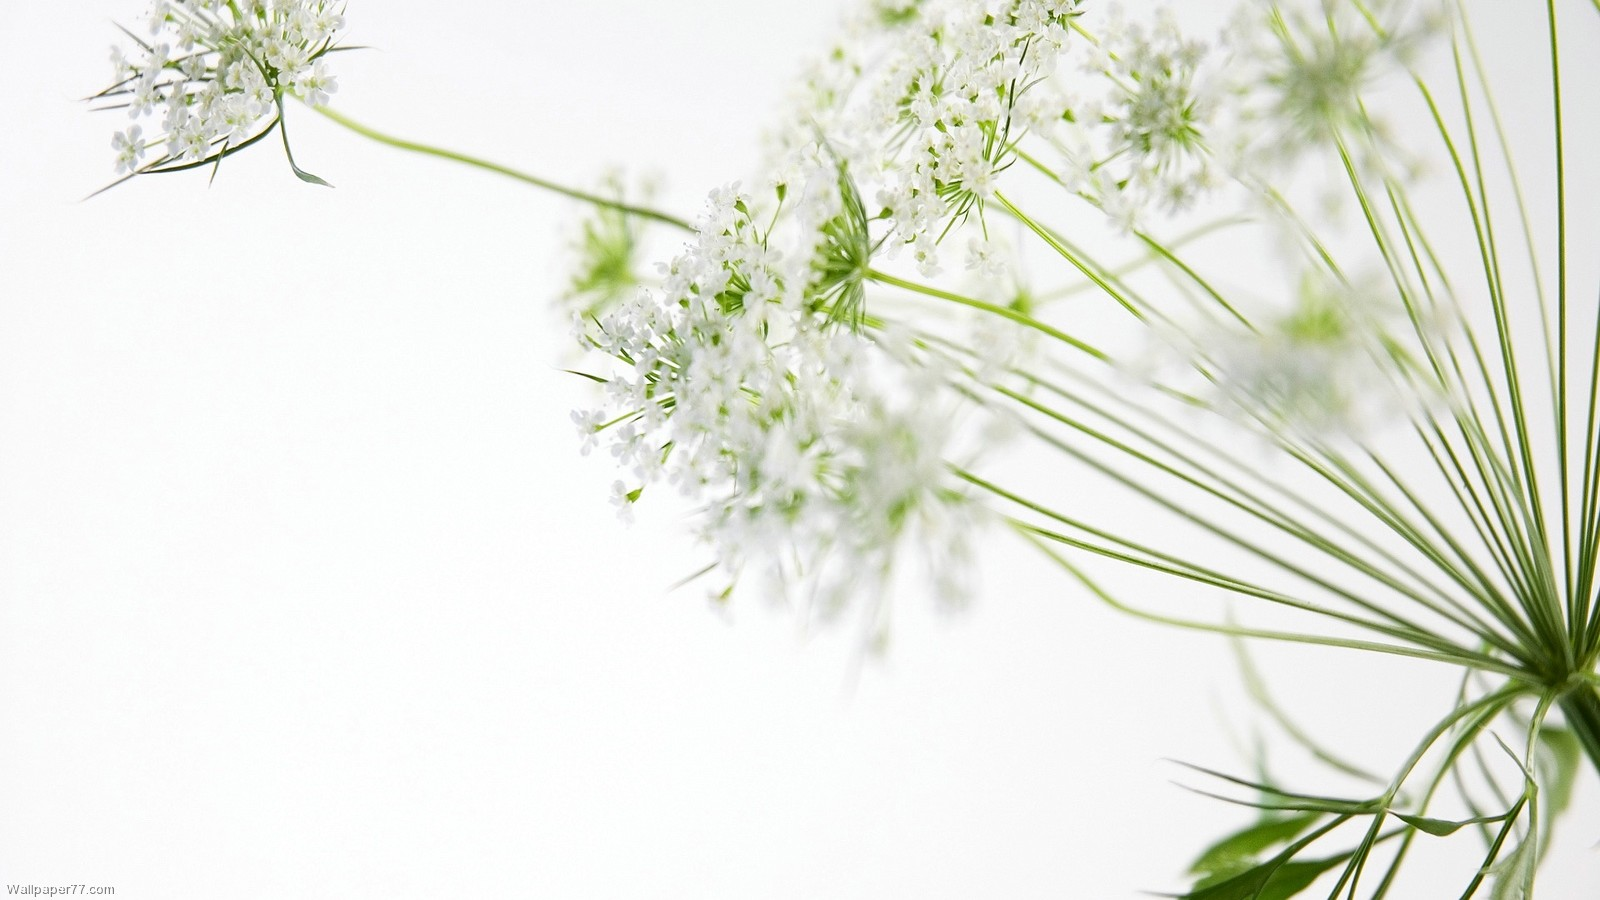 White Flowers Wallpaper For PC Full HD Pictures 1600x900